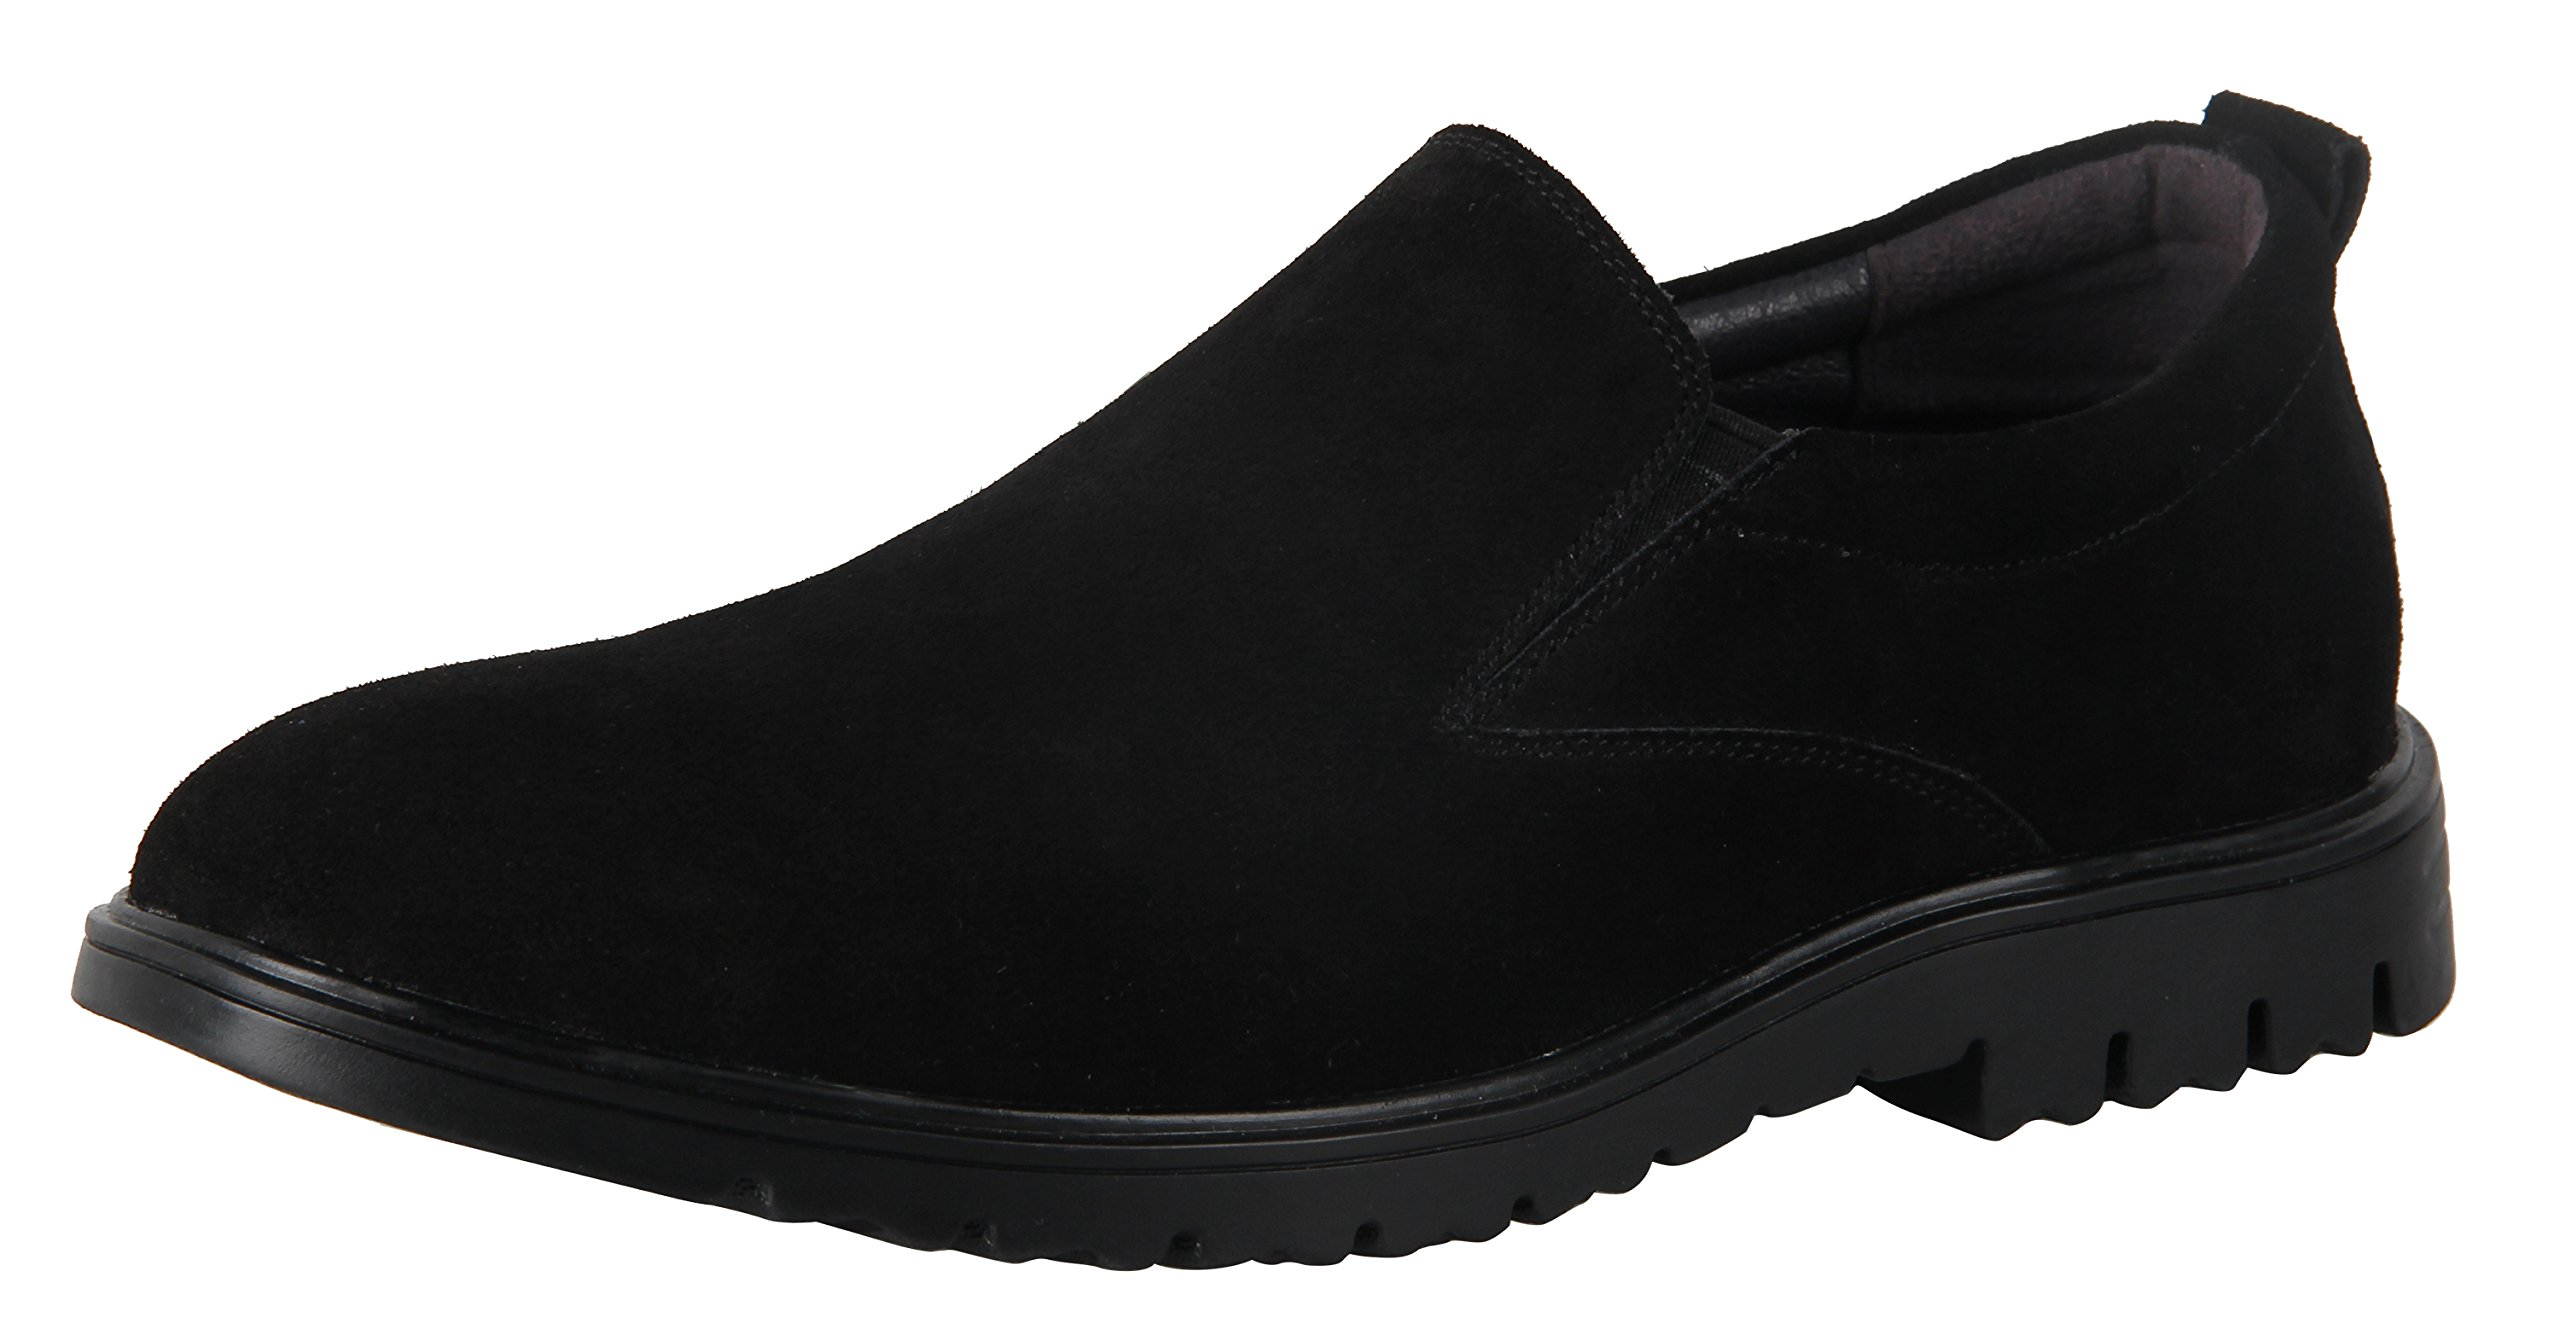 iLoveSIA Men's Suede Leather Casual Slip-ONS Walking Loafer Shoe Black US 8.5